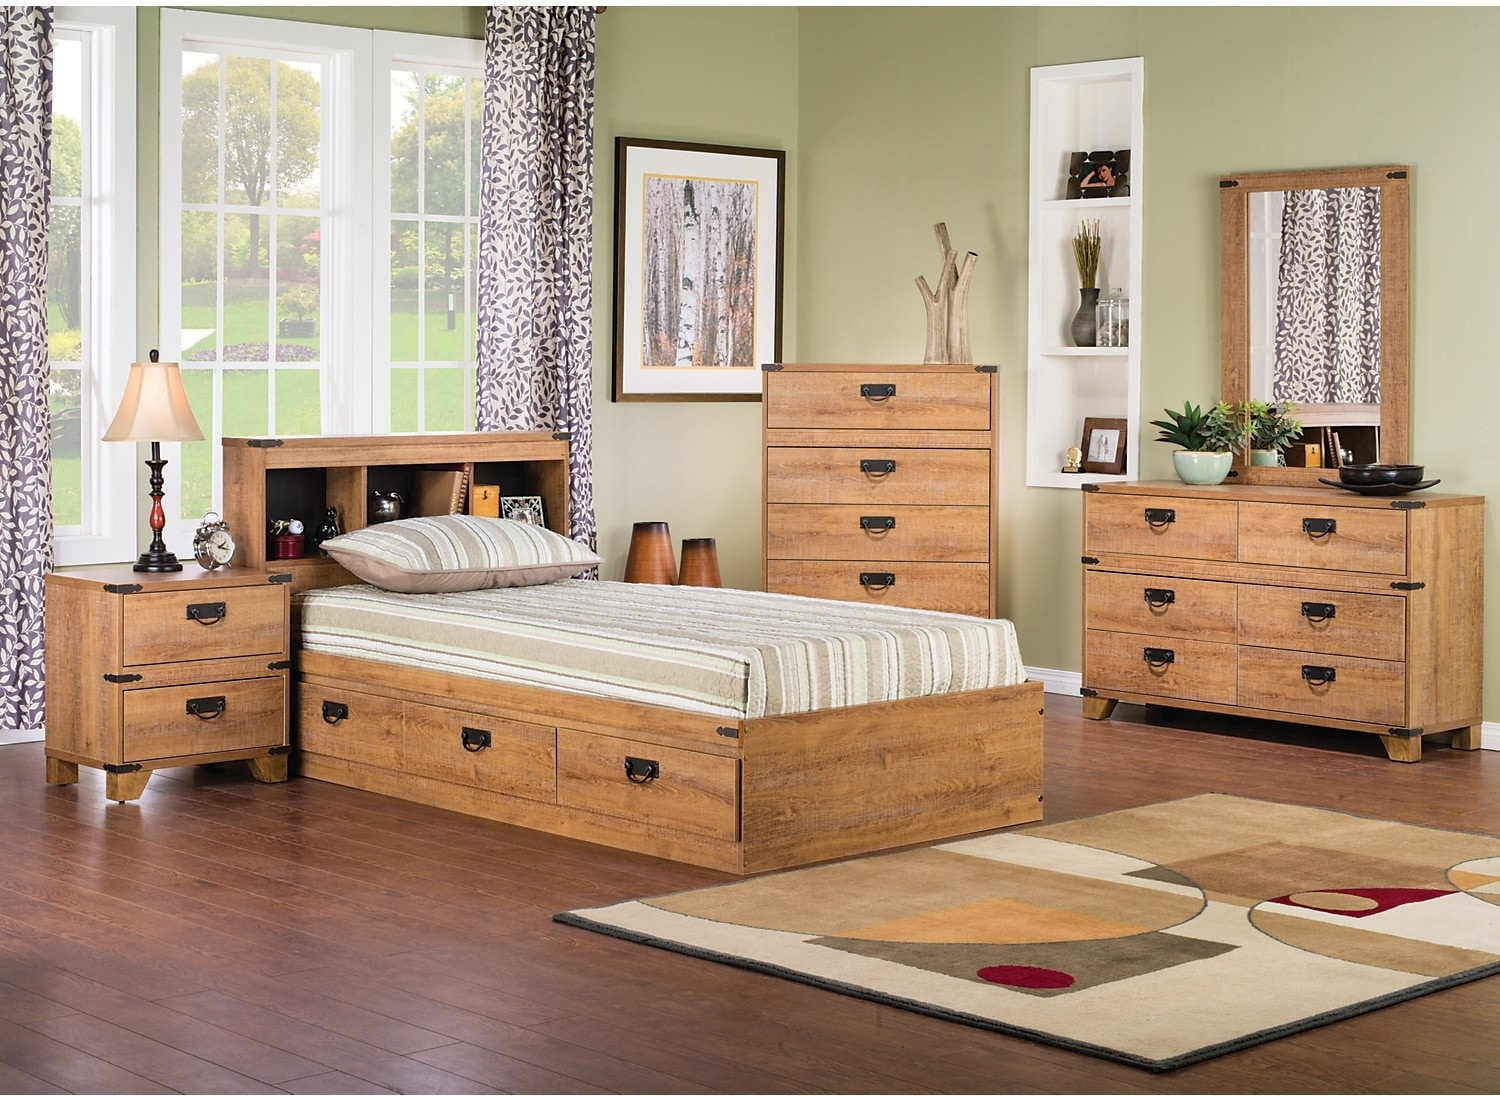 Kids Furniture - Driftwood 6-Piece Mates Bedroom Package